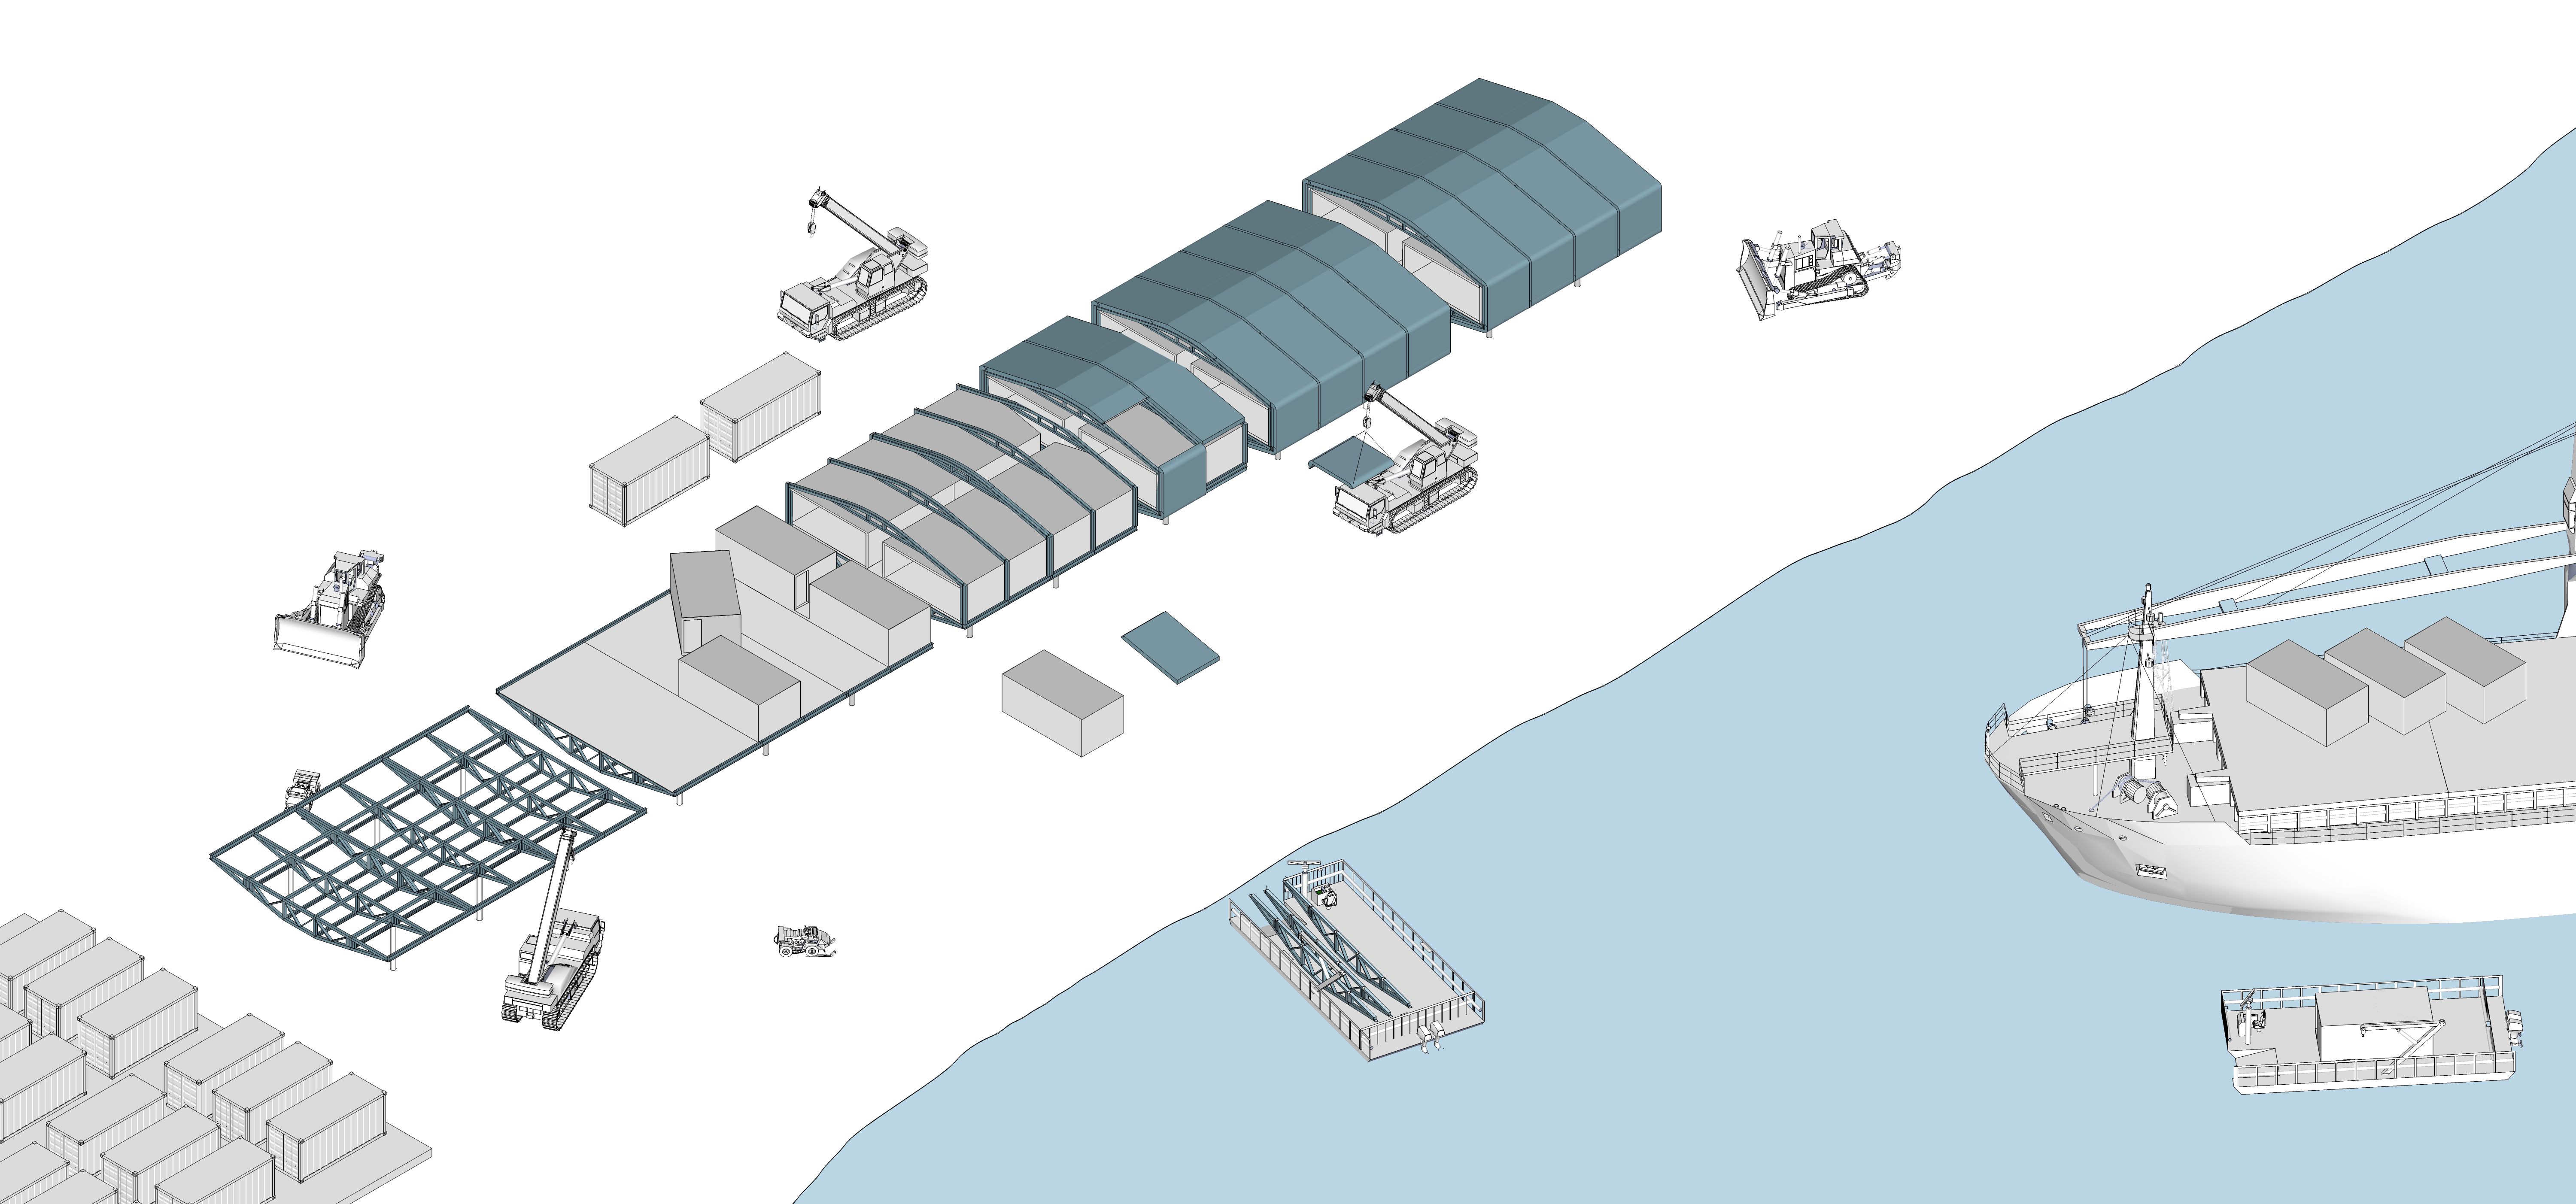 Illustration of the station construction, and the shipment of prefabricated components